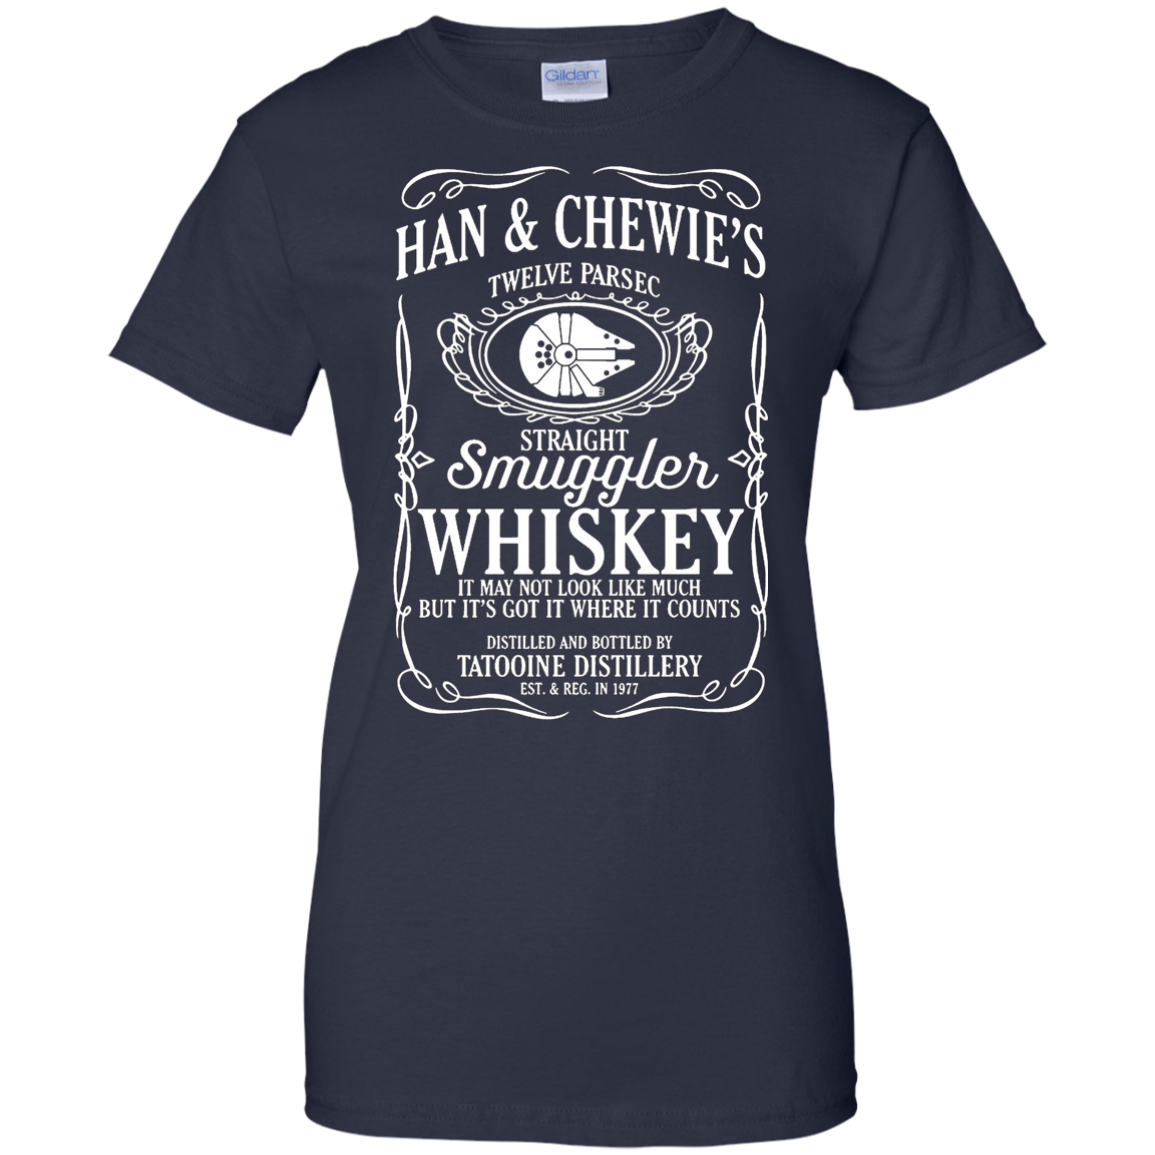 Han & Chewie's Twelve Parsec Straight Smuggler Whiskey